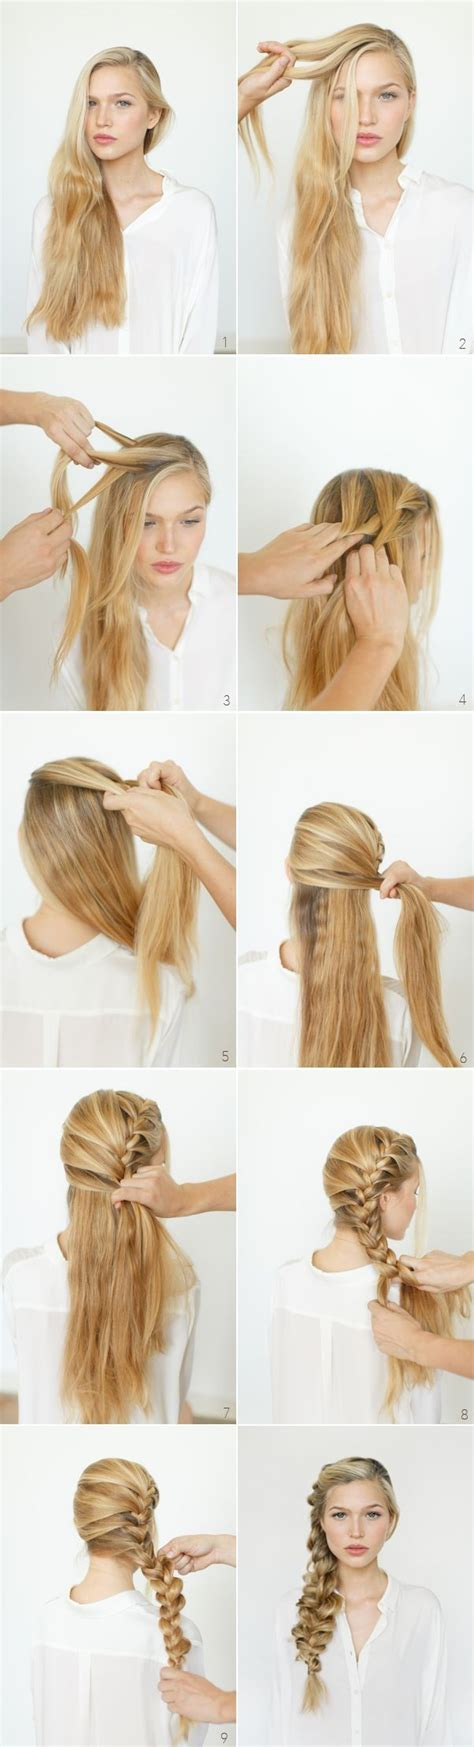 Haircut For Long Hair Step By Step | step by step hairstyles for long hair long hairstyles